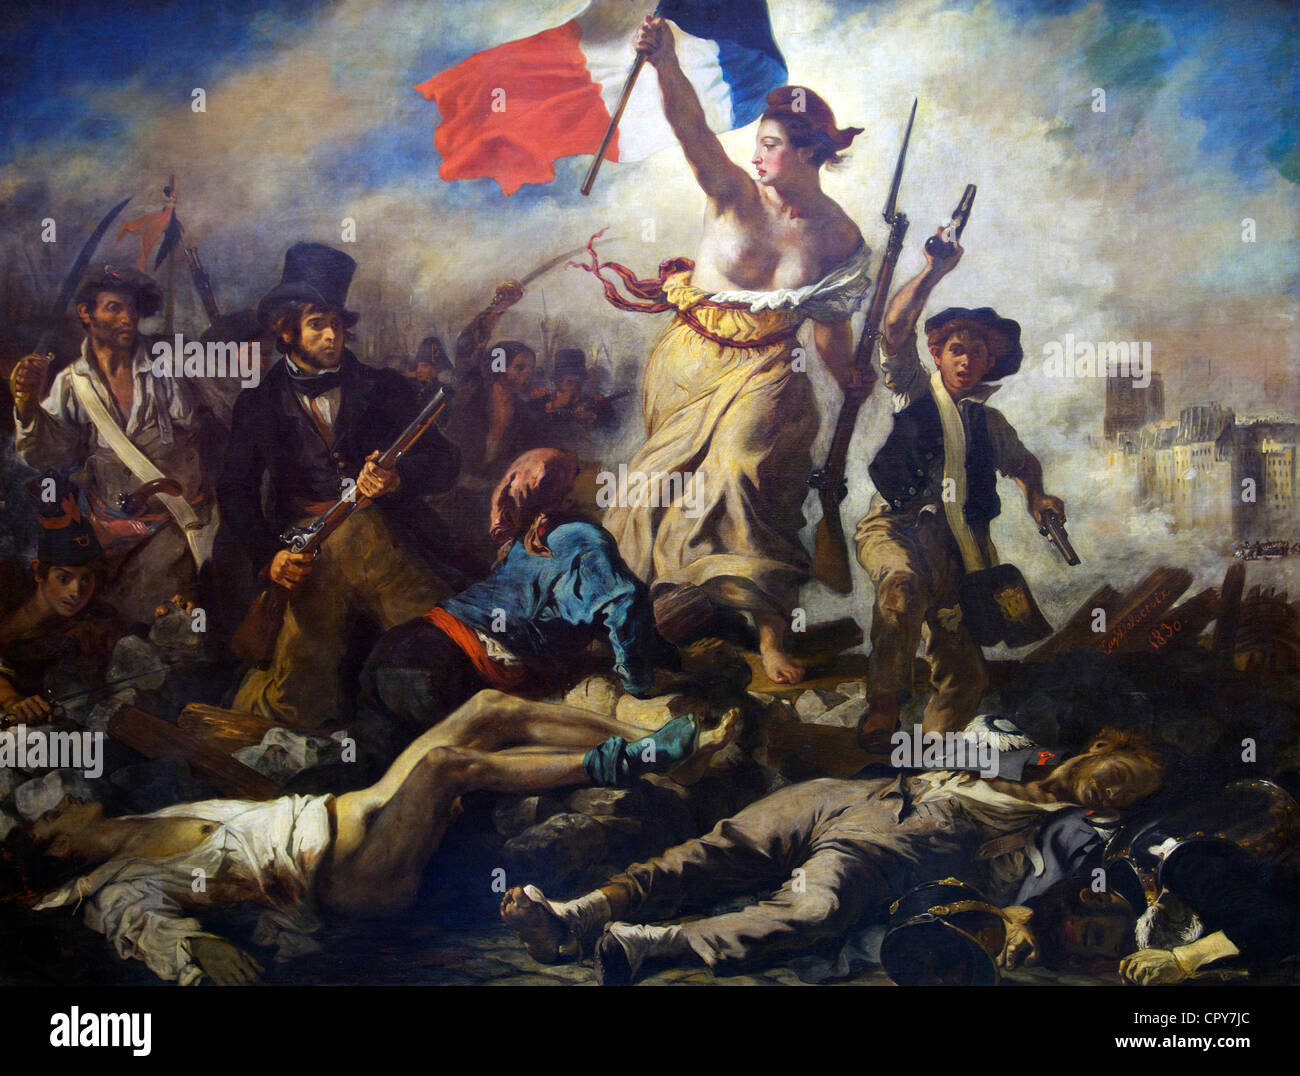 Liberty Guides the People, 28th July 1830, by Eugene Delacroix, 1831, Musee du Louvre Museum, Paris, France, Europe - Stock Image